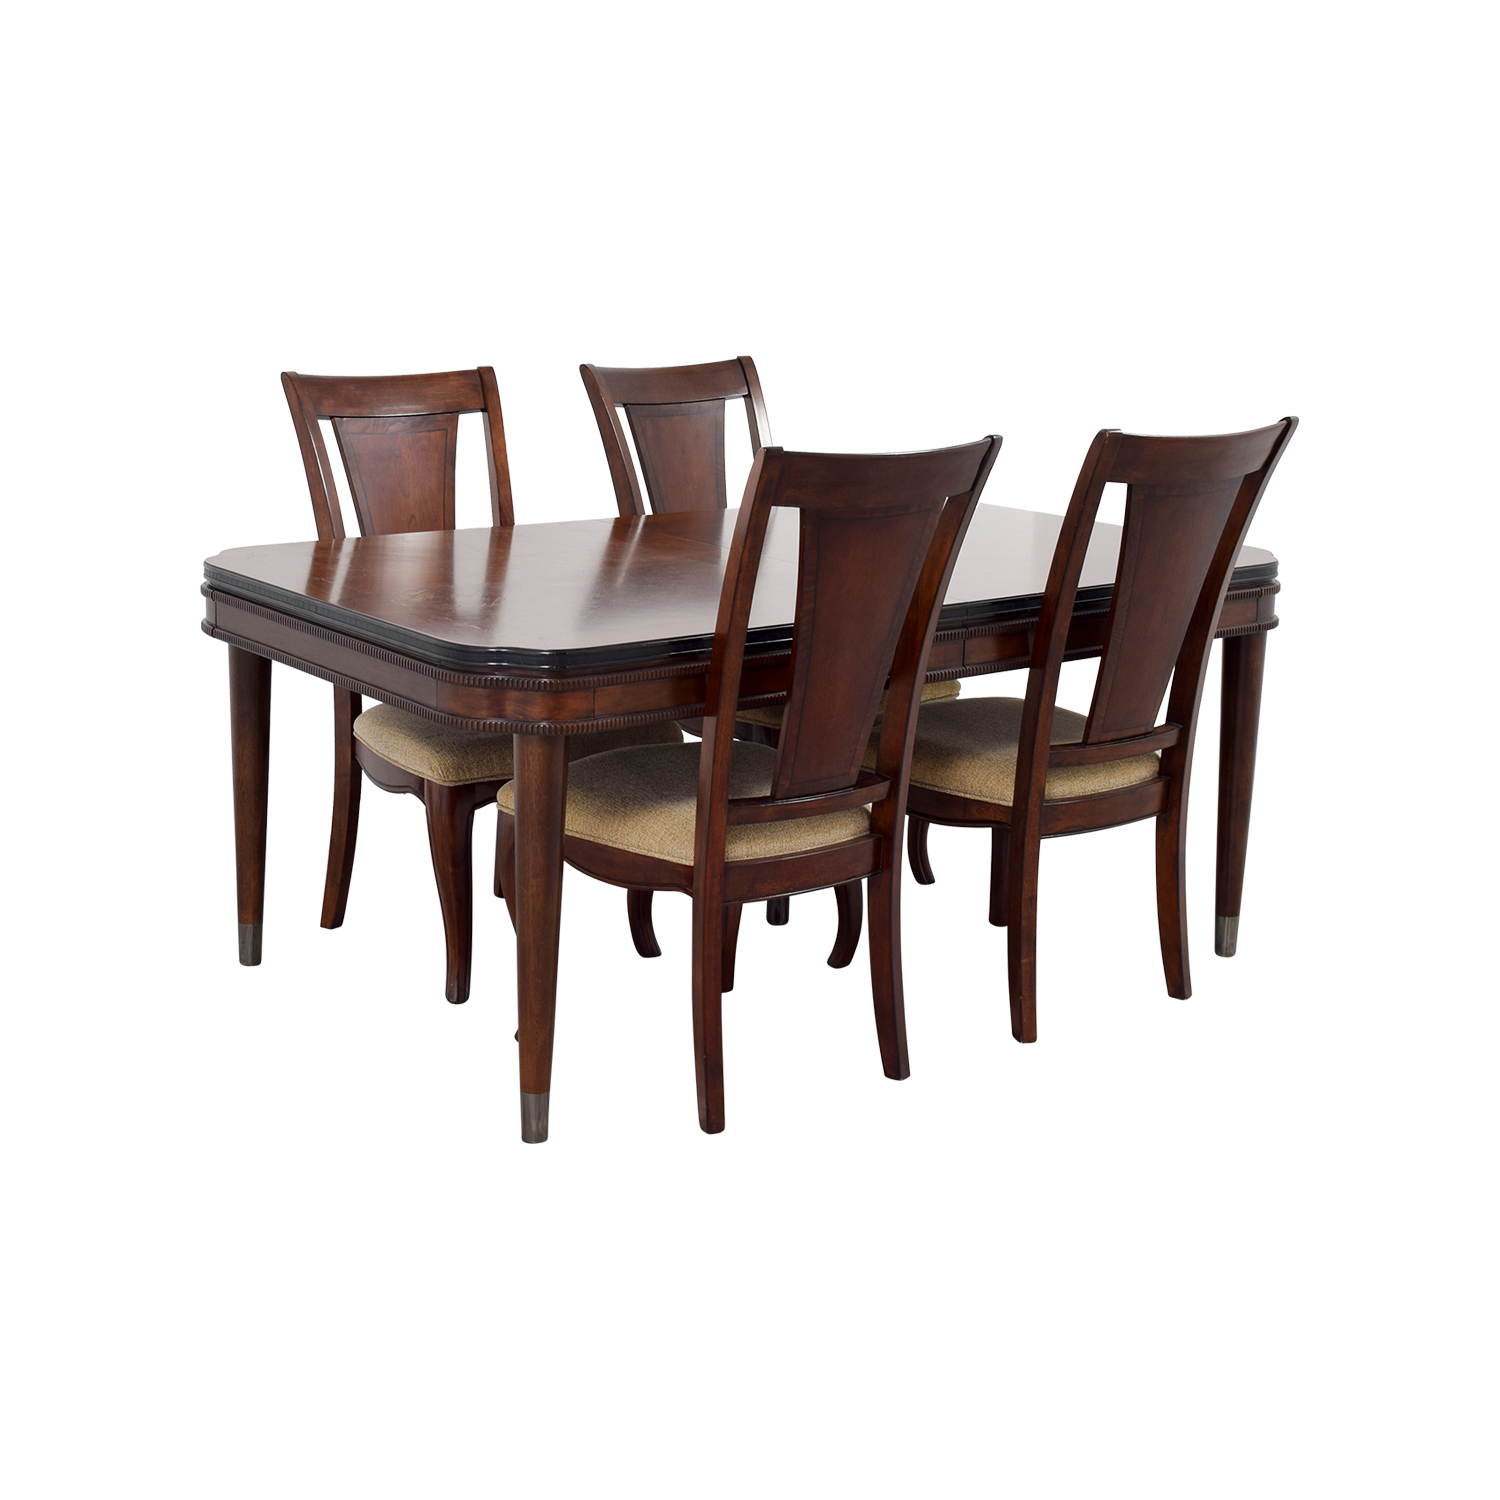 56 off raymour flanigan raymour flanigan extendable for Extendable dining set